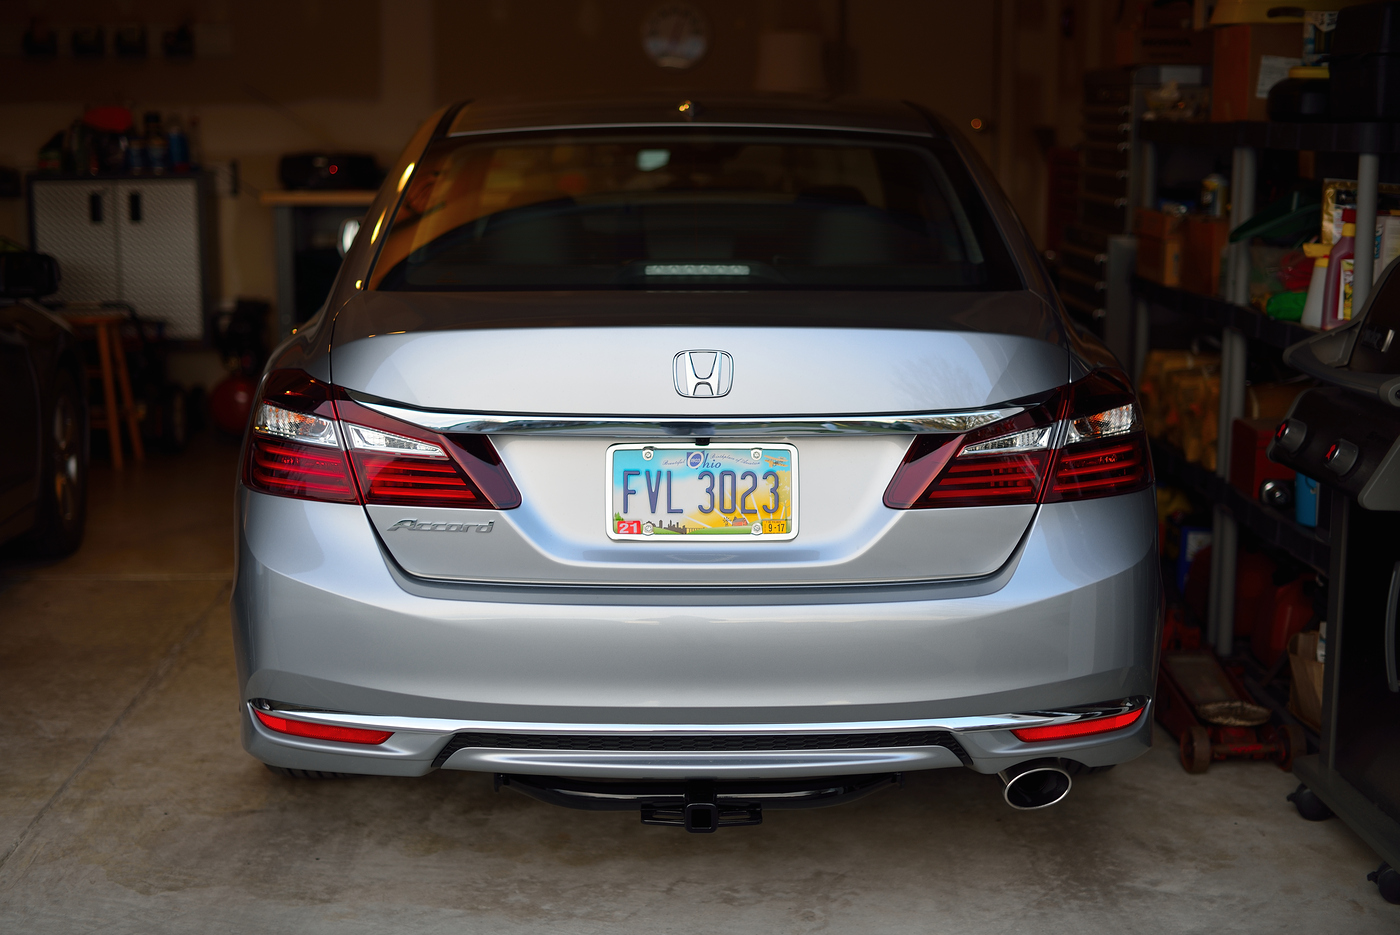 9th Gen Accord Picture Thread Page 232 Drive Accord Honda Forums